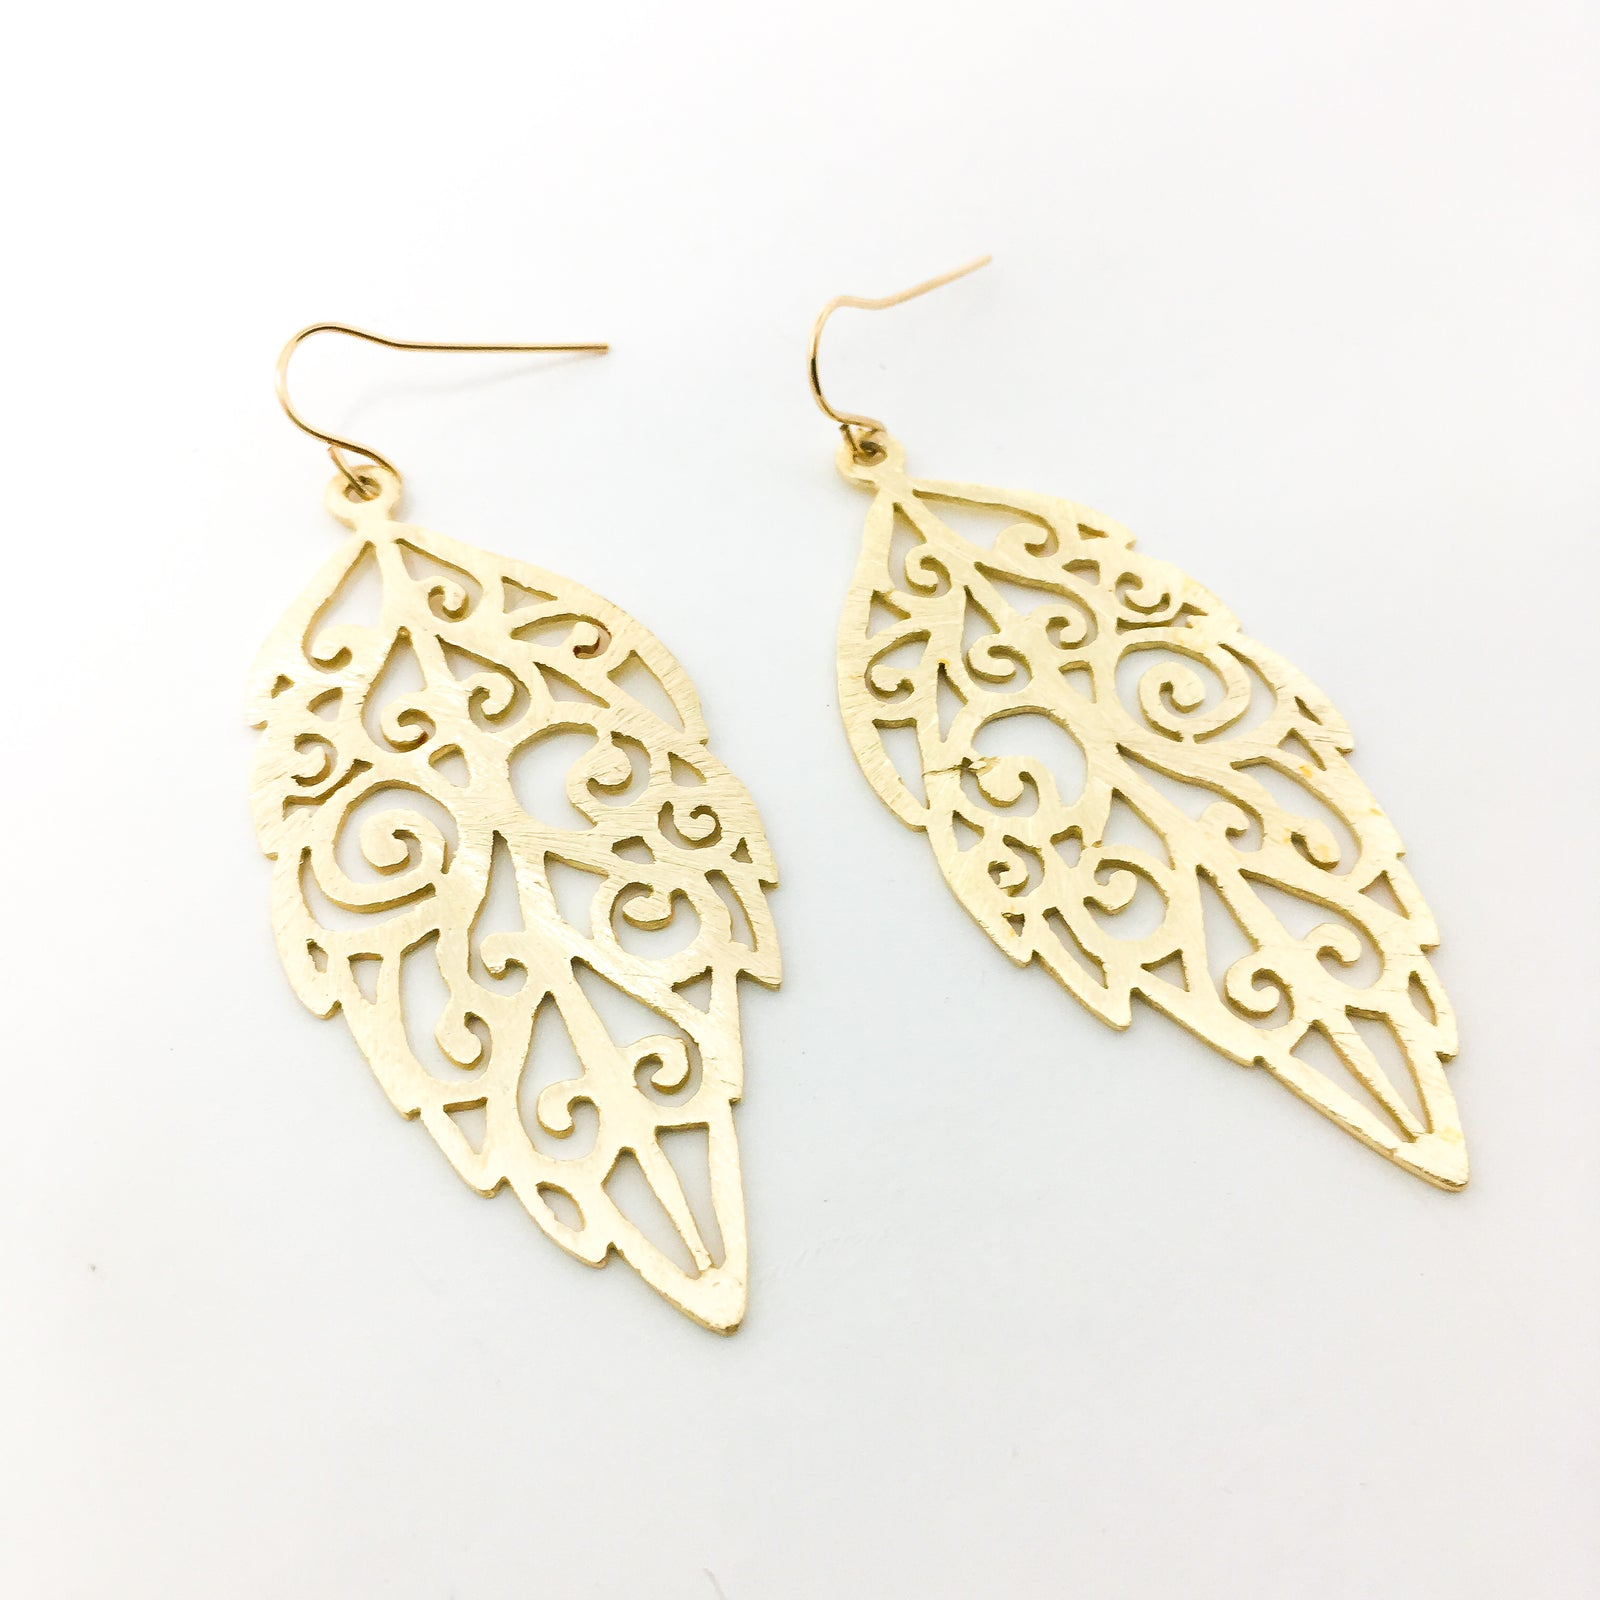 BRUSHED PATTERNED LEAF EARRINGS | 14K GOLD-FILLED